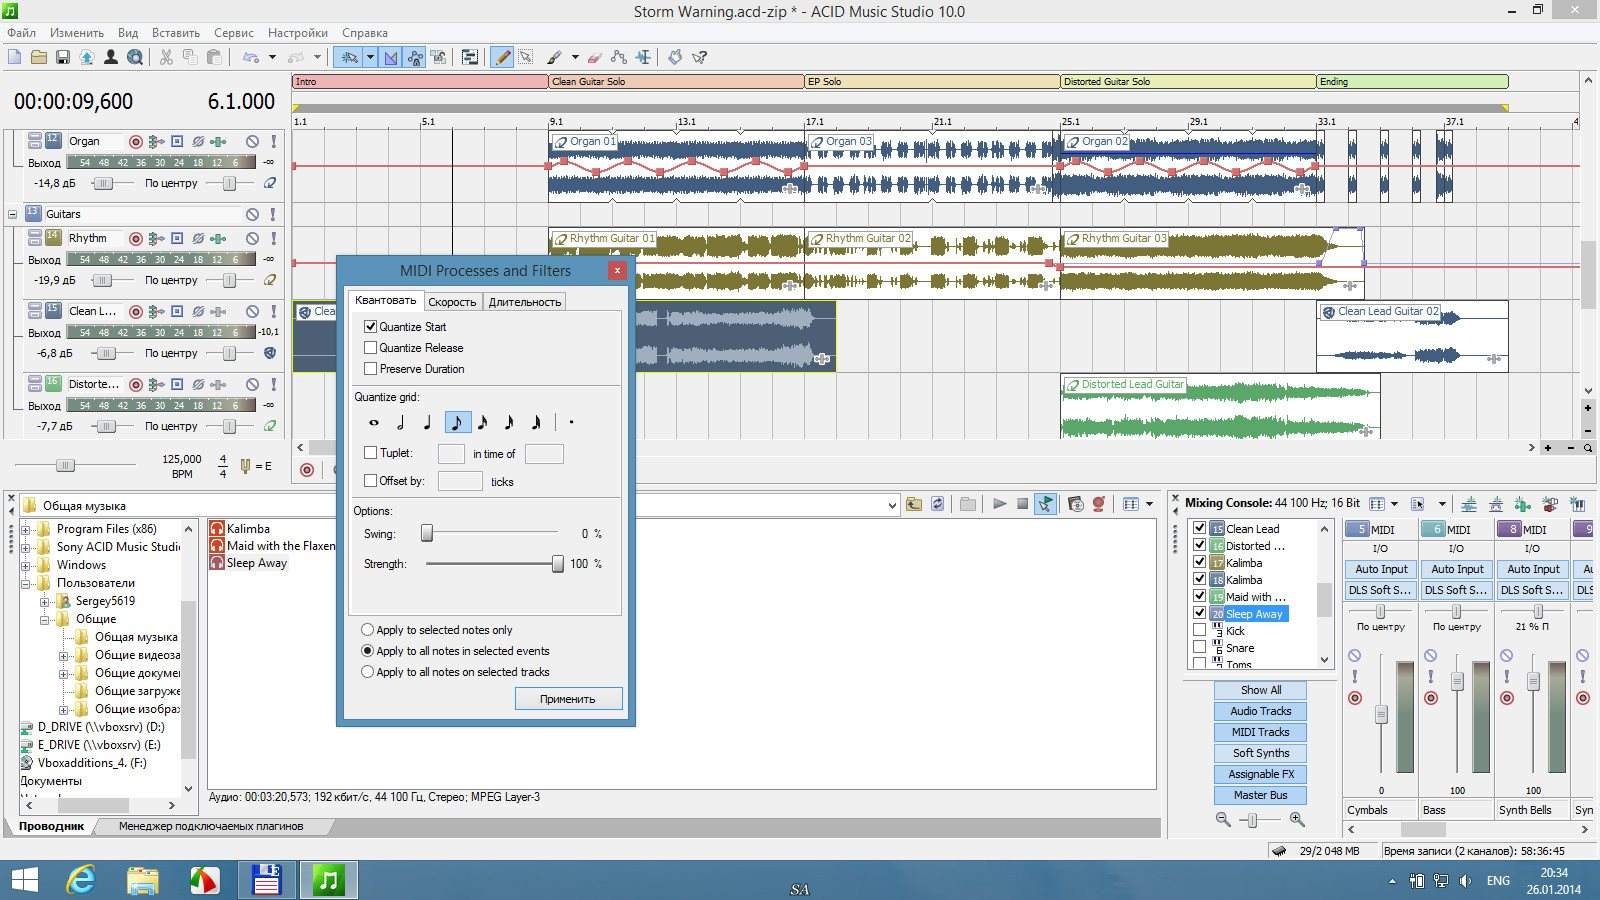 MAGIX ACID Music Studio 10.0 Full Version Crack